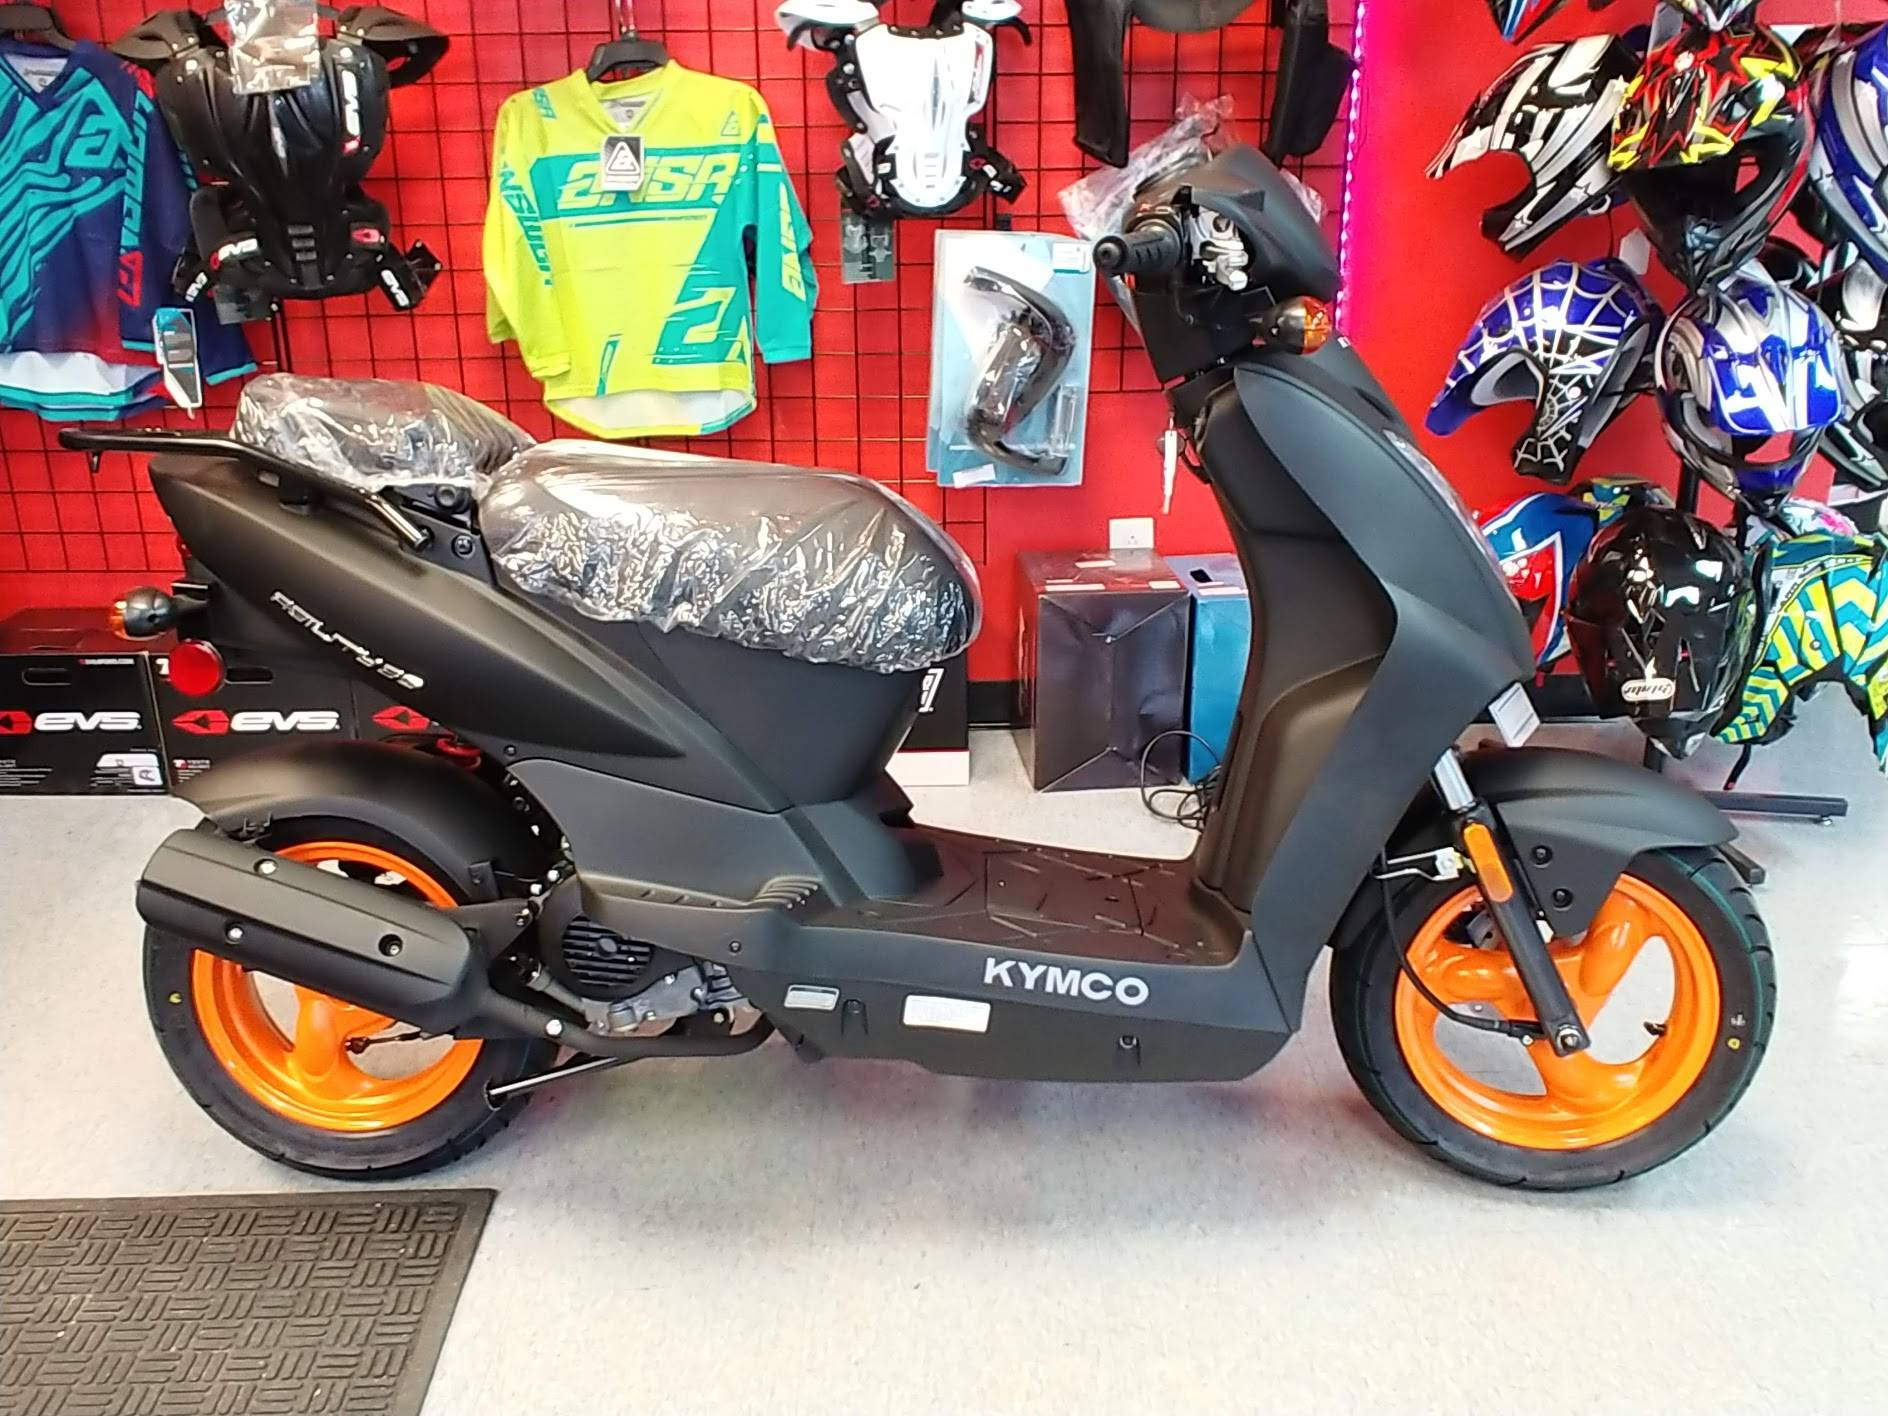 2019 Kymco Agility 50 in Virginia Beach, Virginia - Photo 4